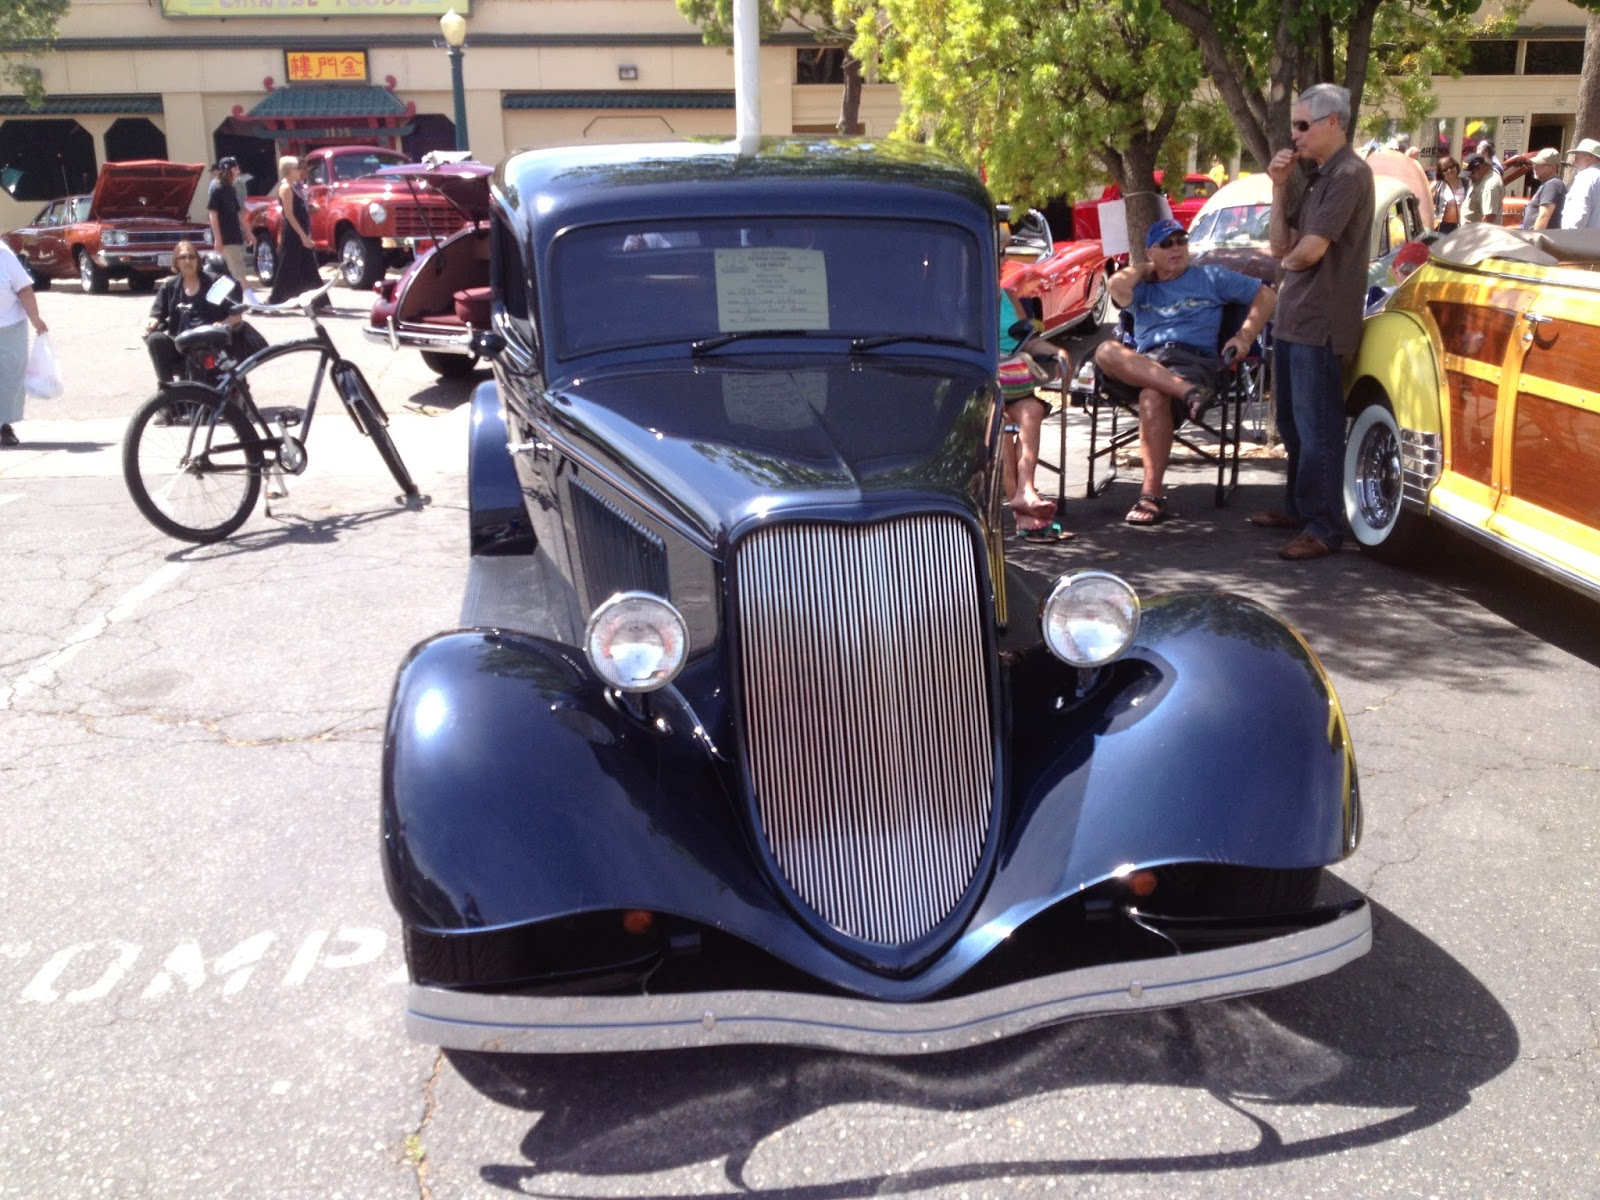 Carson's Car Pics: 1930's Ford Coupe